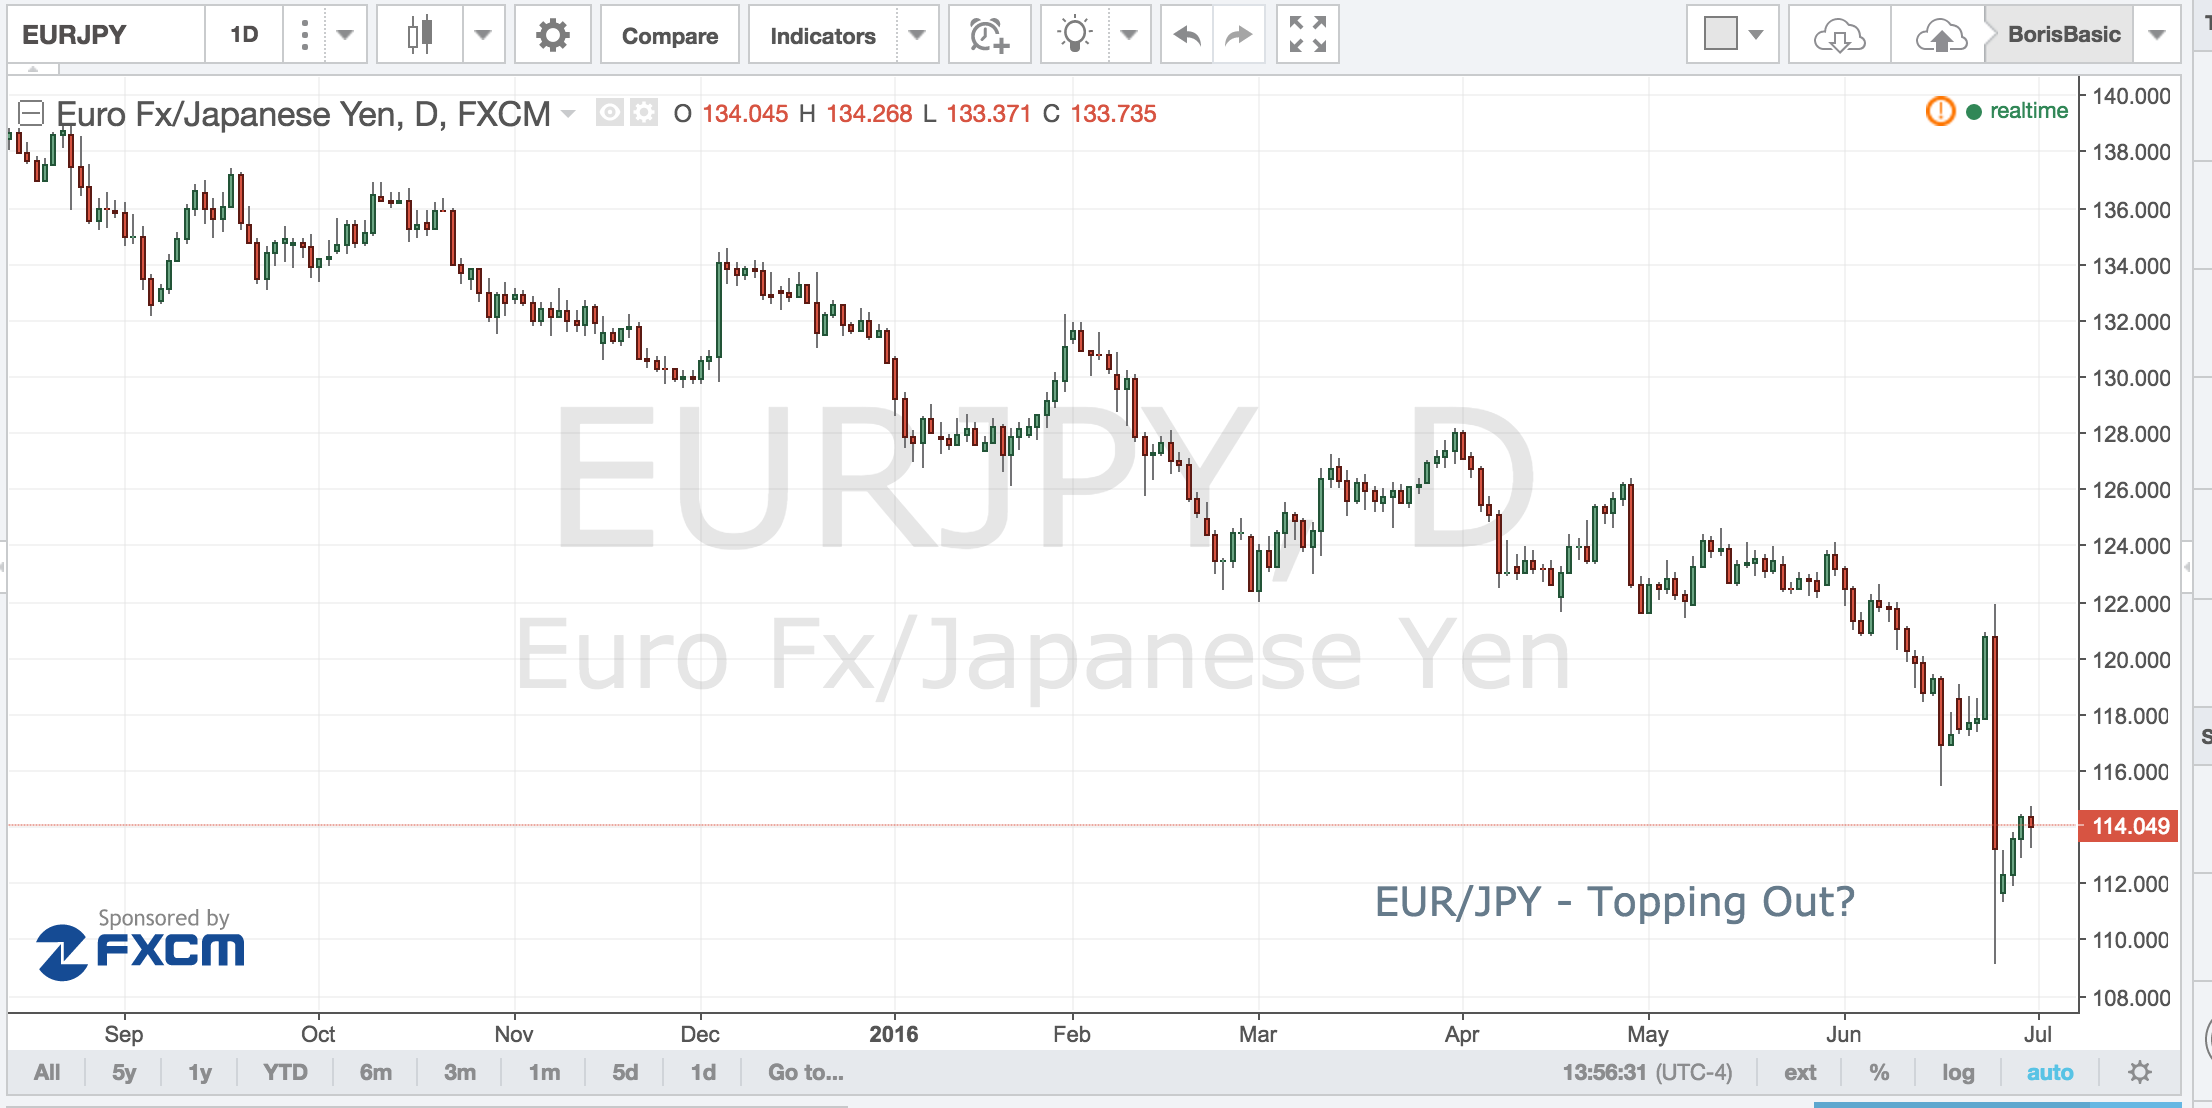 EURJPY – Topping Out?